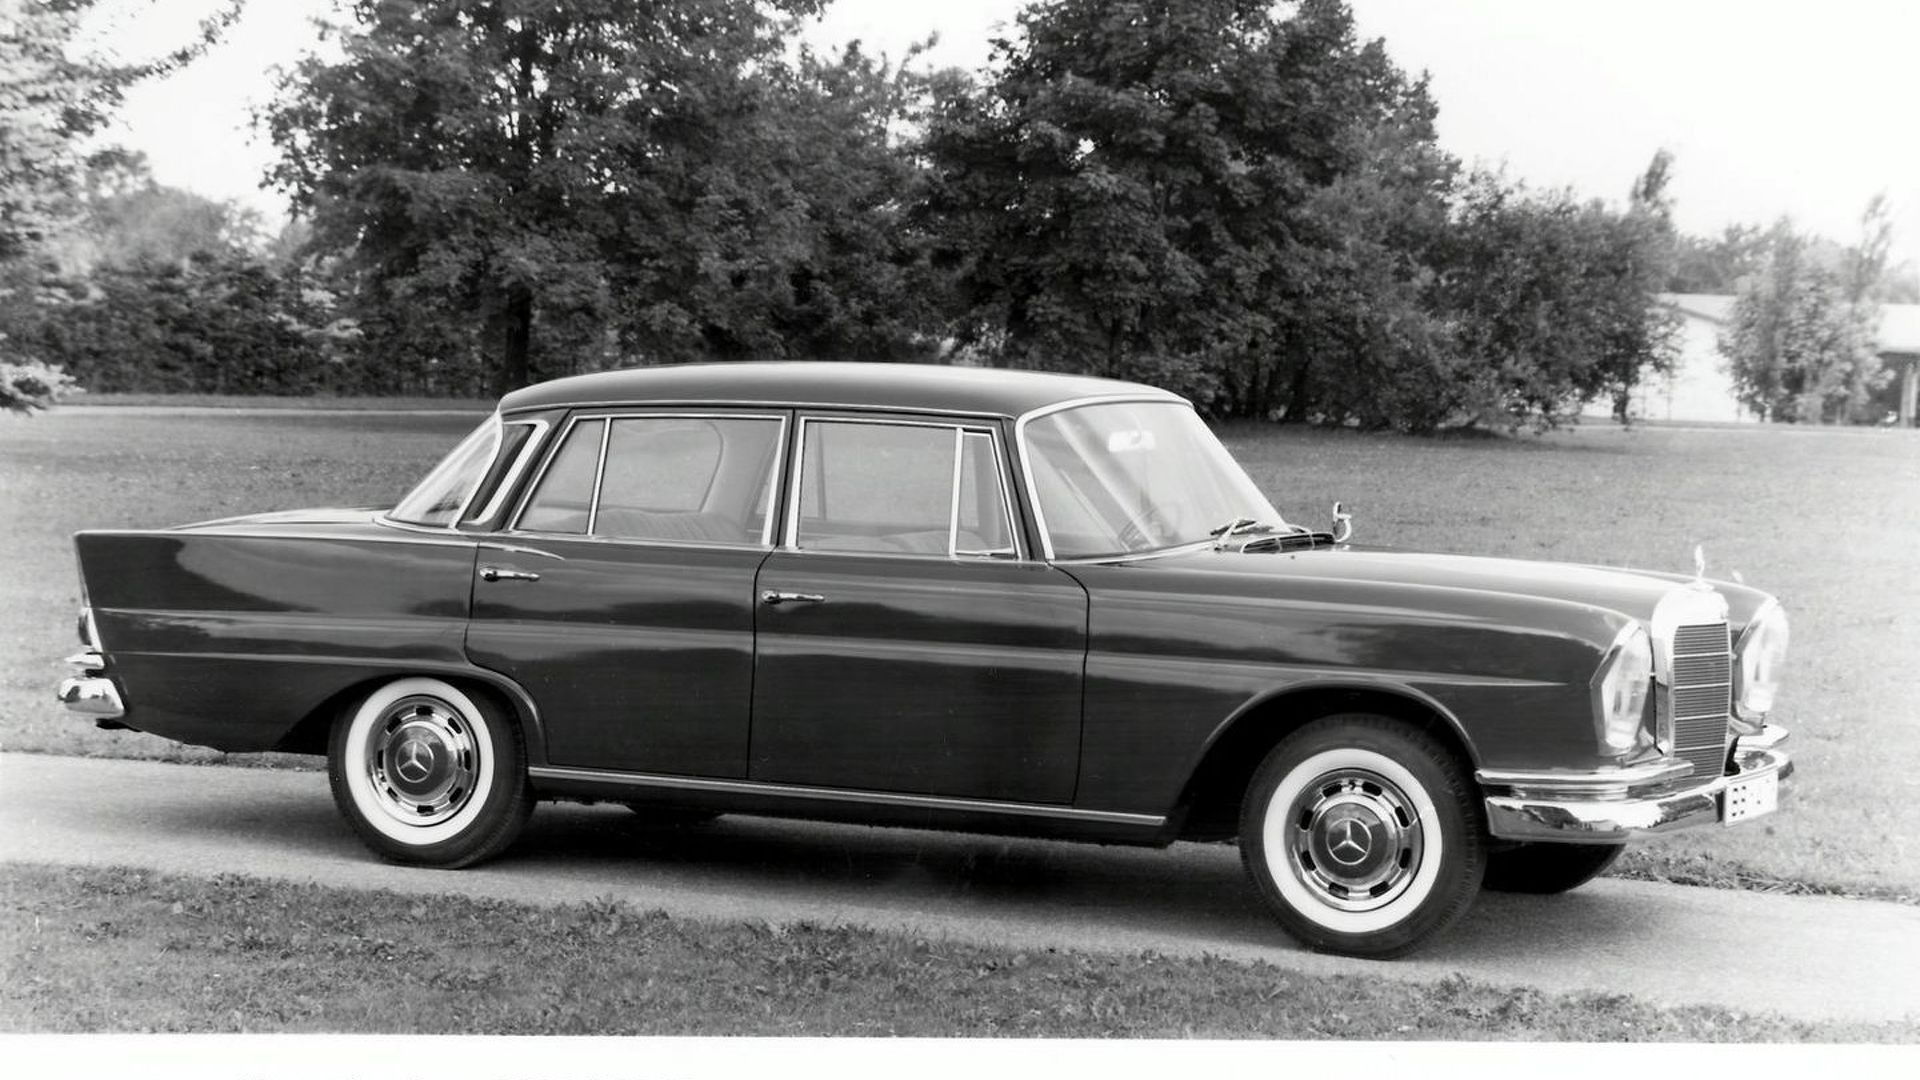 Mercedes Innovation: The Crumple Zone in 1952